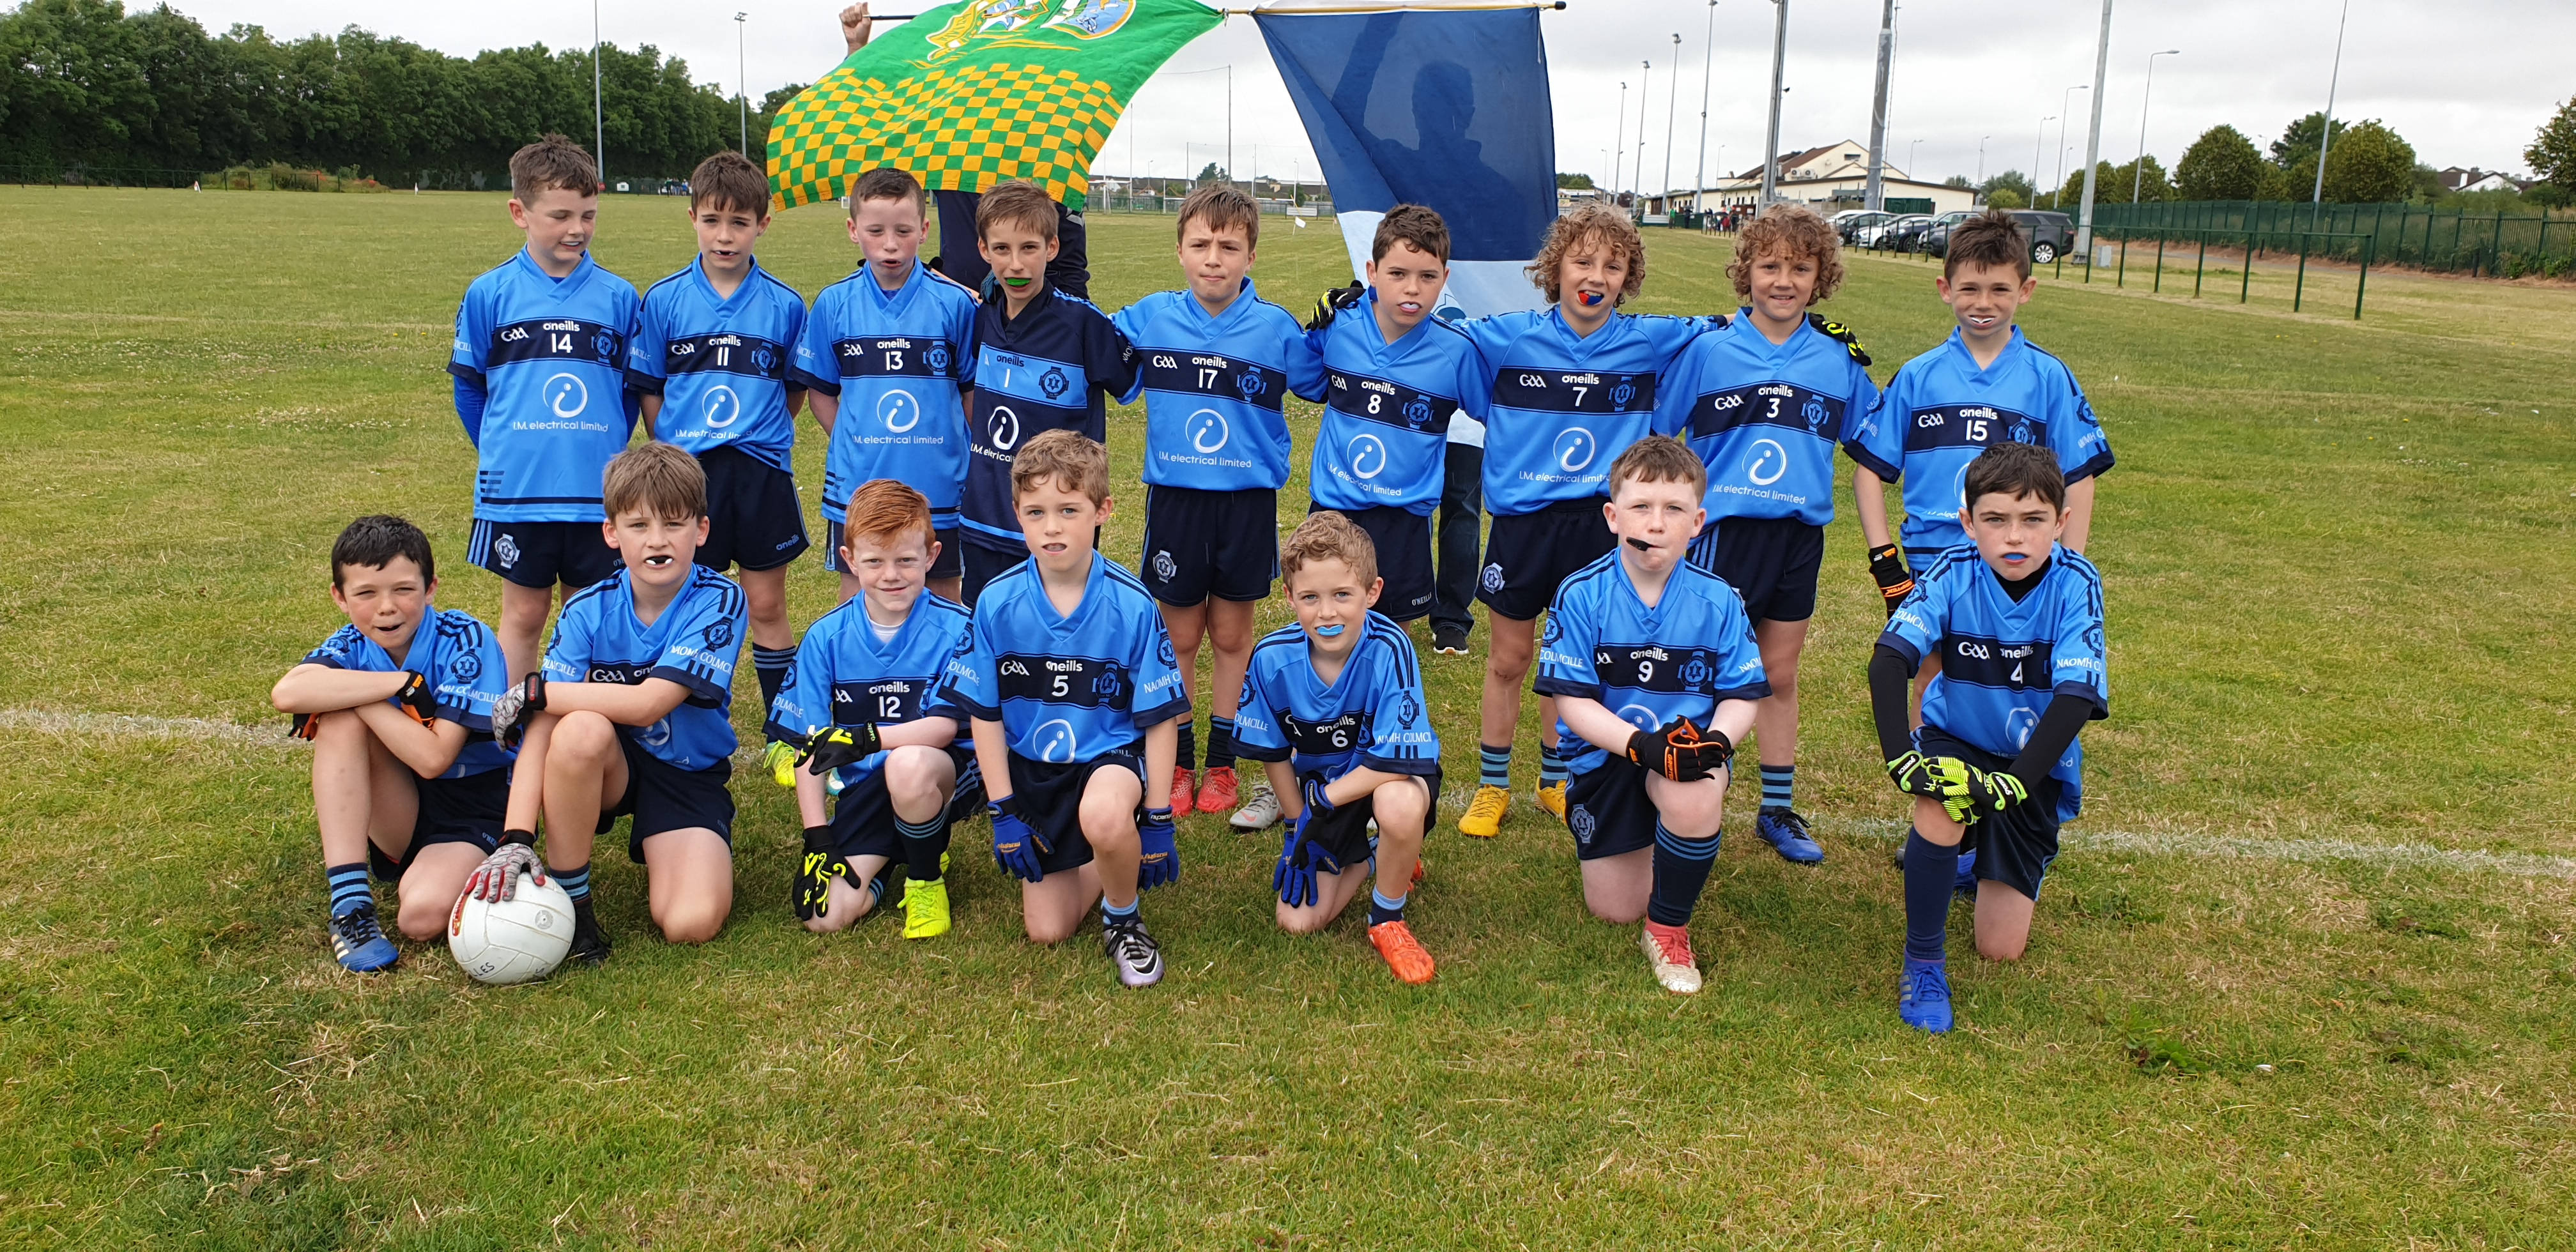 Community Games 2019, Eire Og Carlow